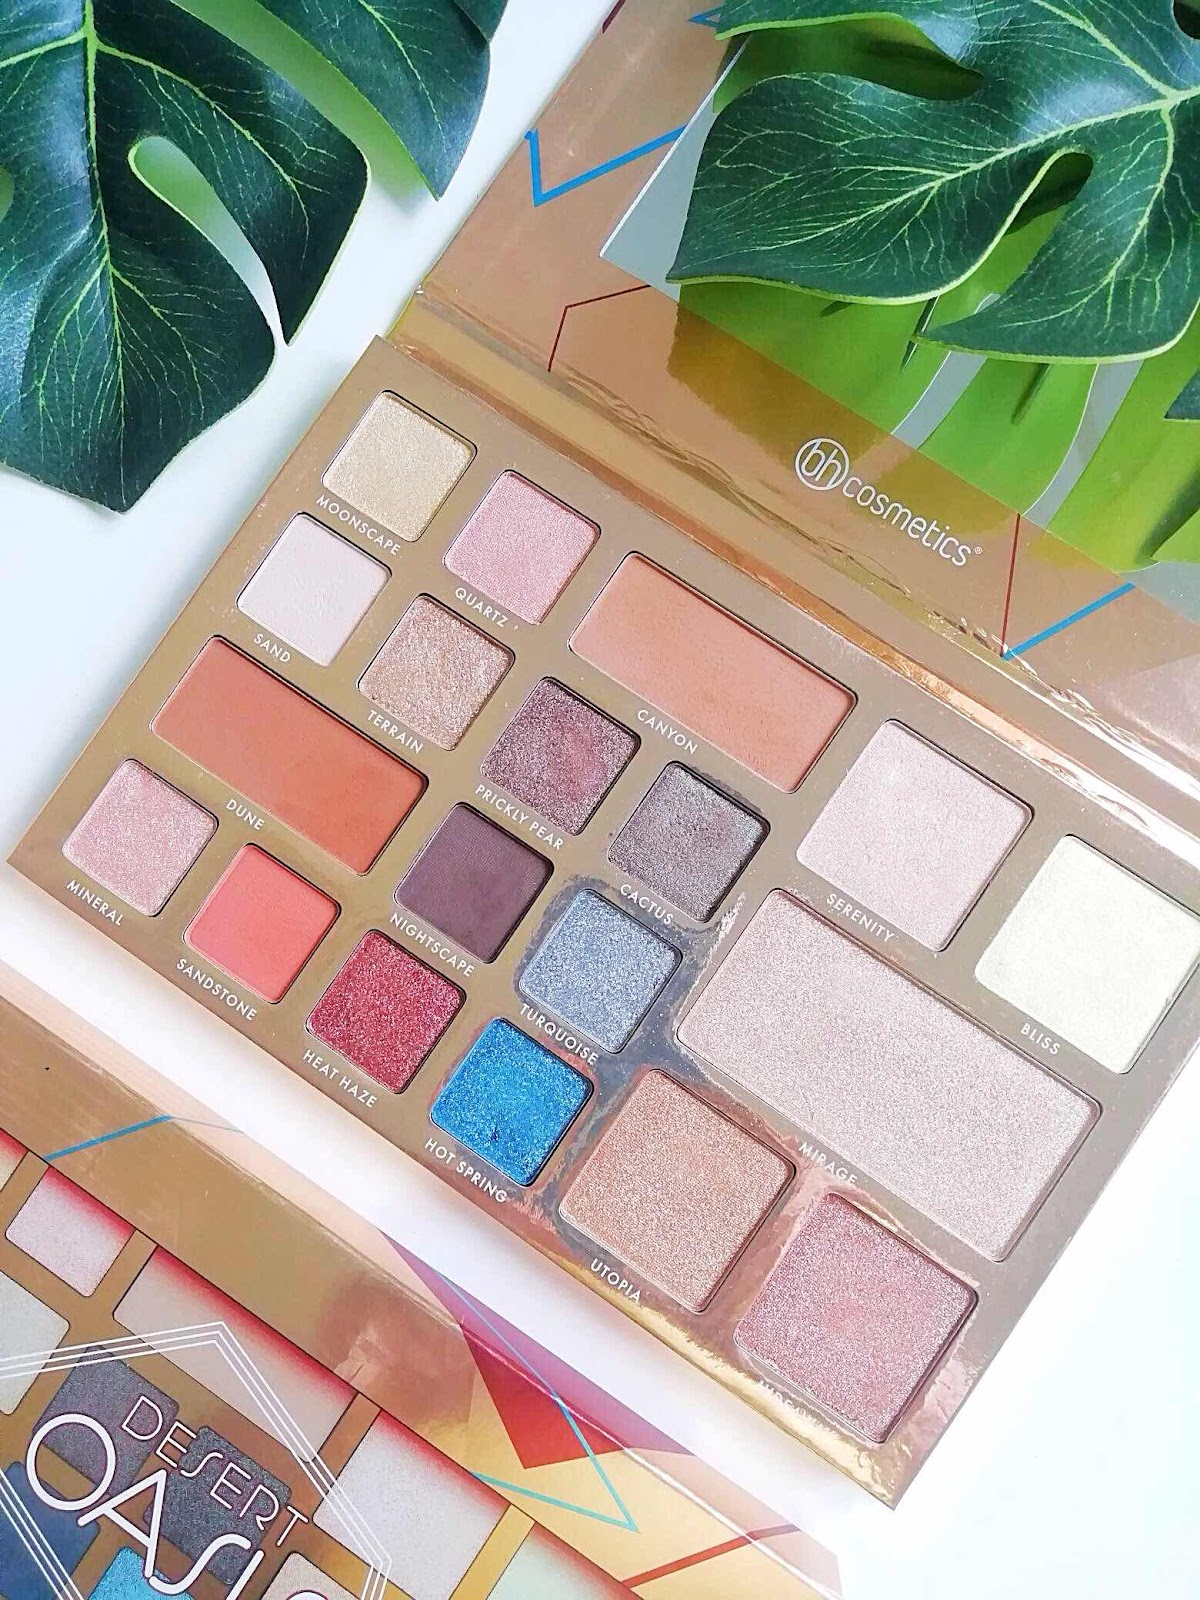 Bh Cosmetics Desert Oasis Eyeshadow and Highlighter Palette